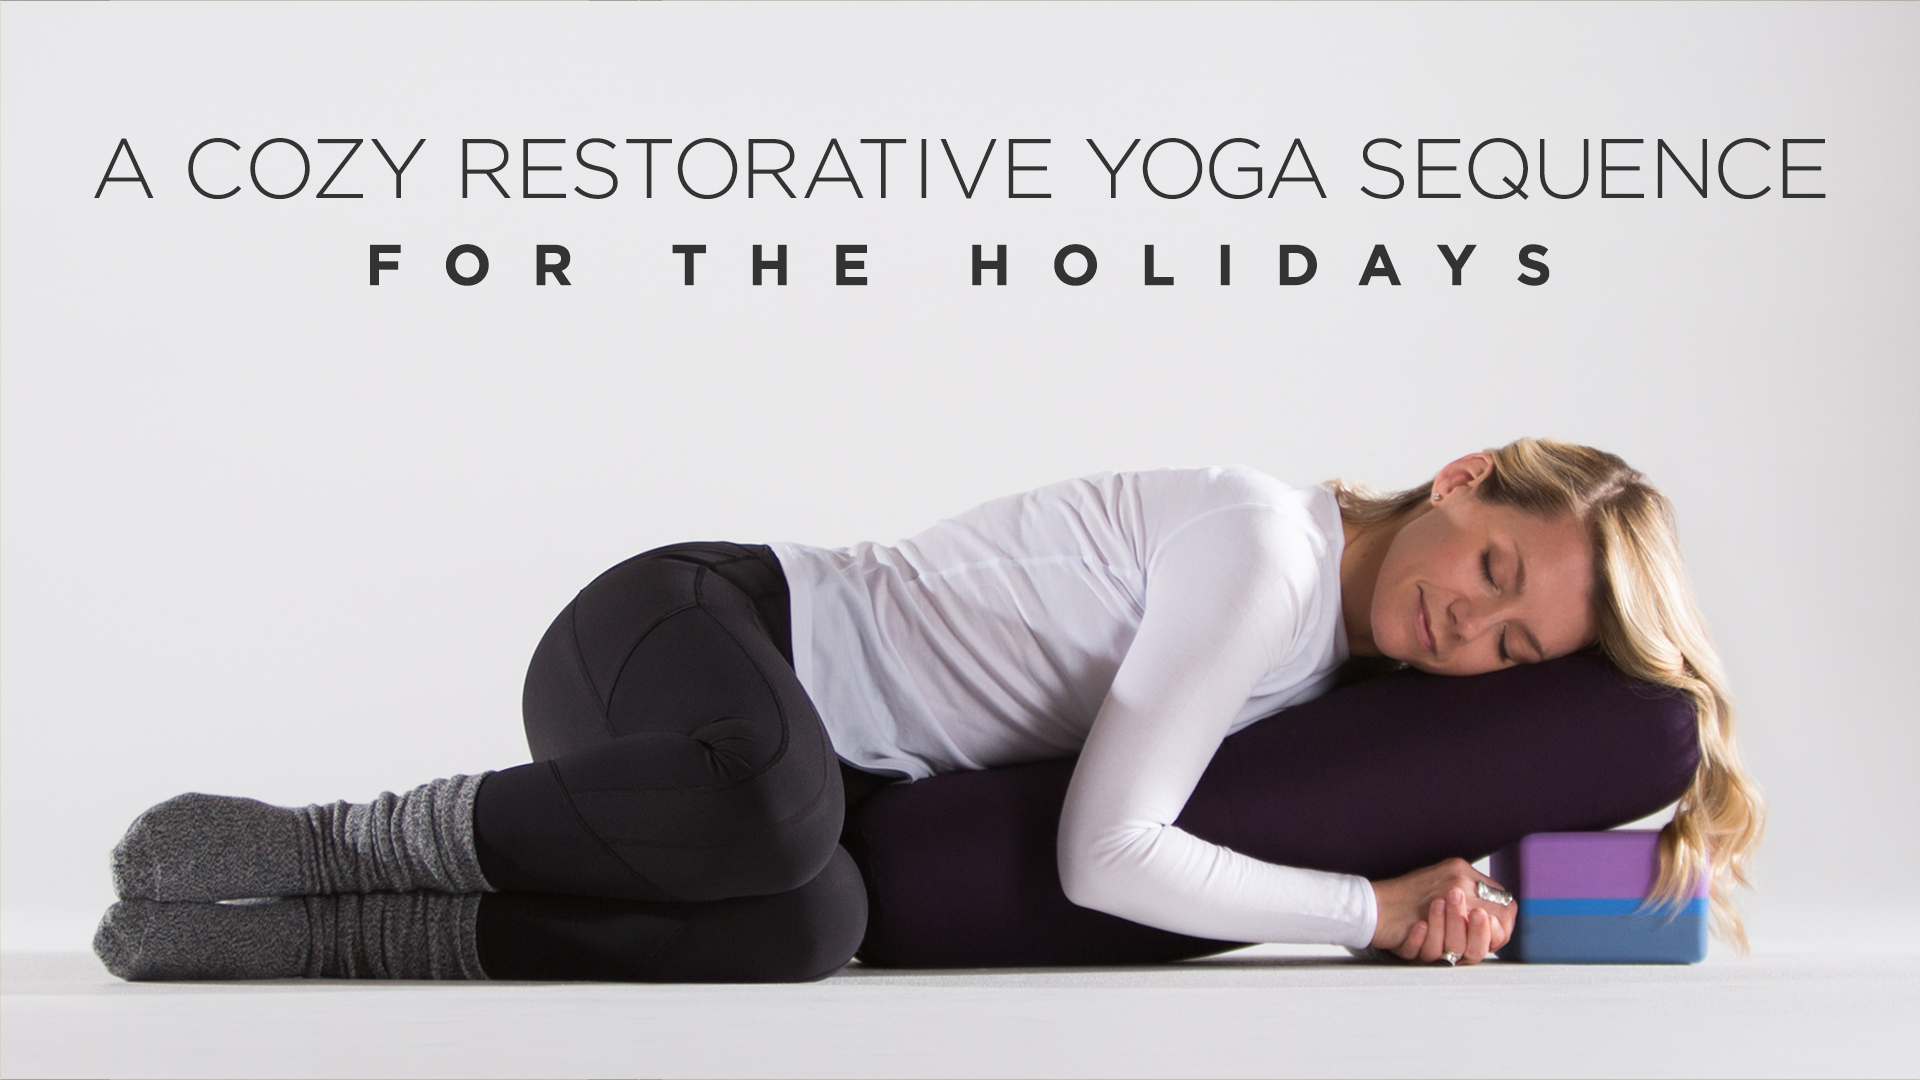 A Cozy Restorative Yoga Sequence for the Holidays